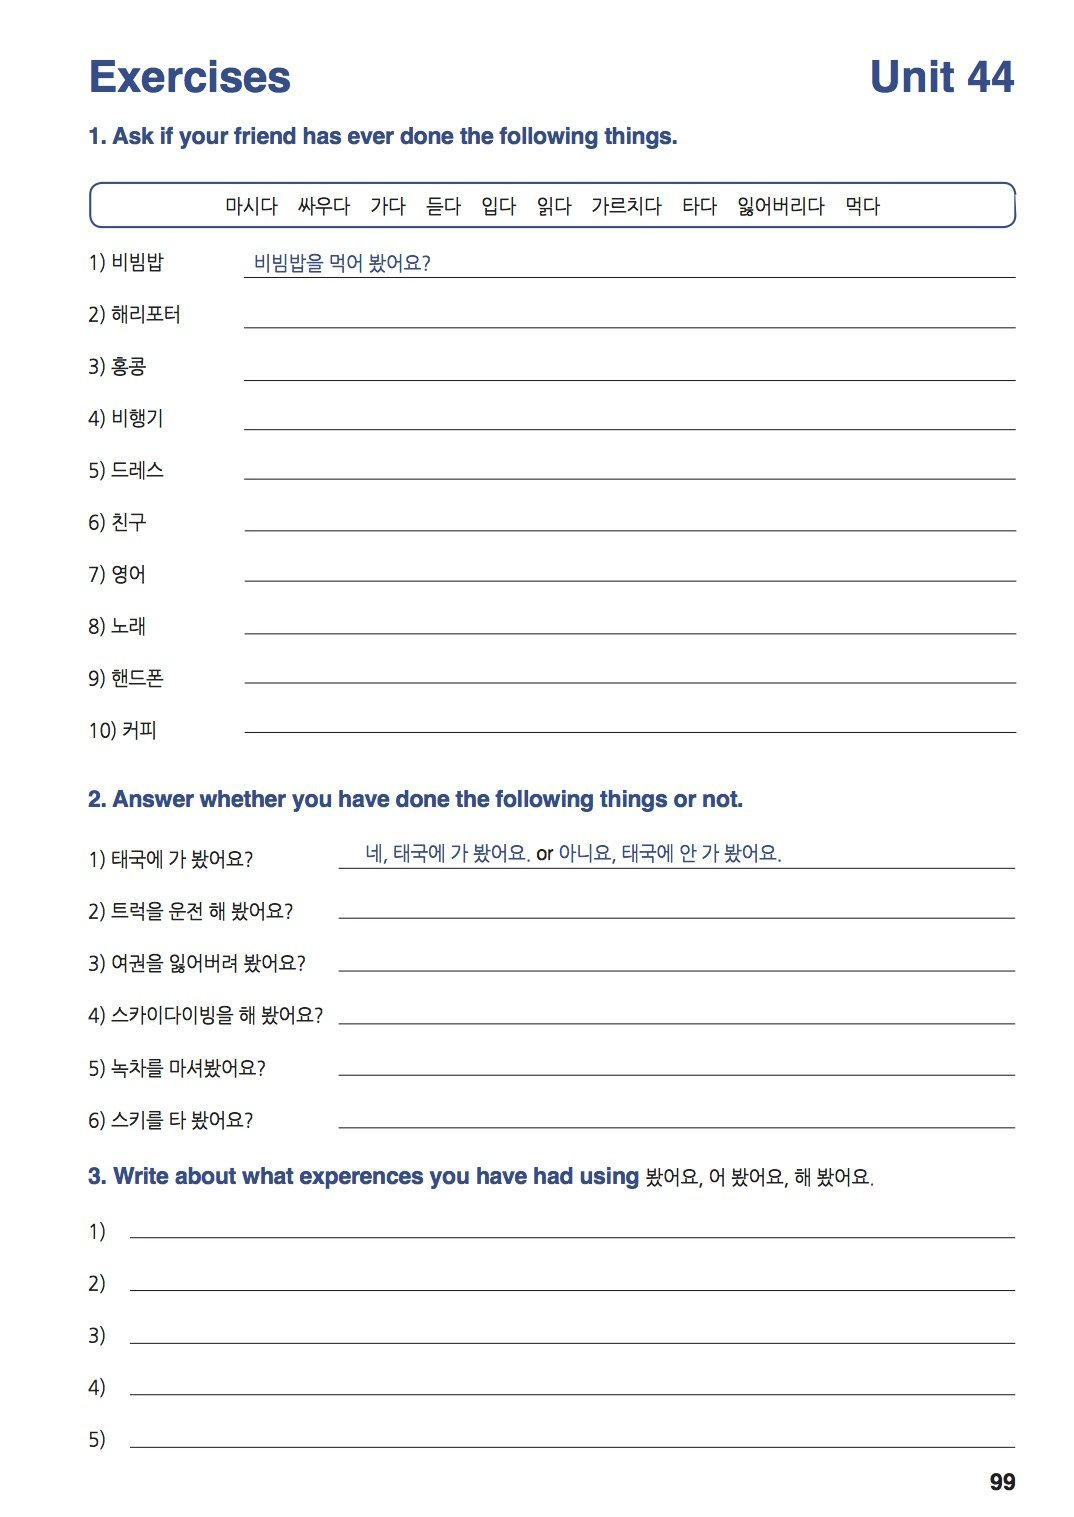 worksheet Learning Korean Worksheets workbooks learning hangul worksheets free printable learn and study korean with grammar for speaking song